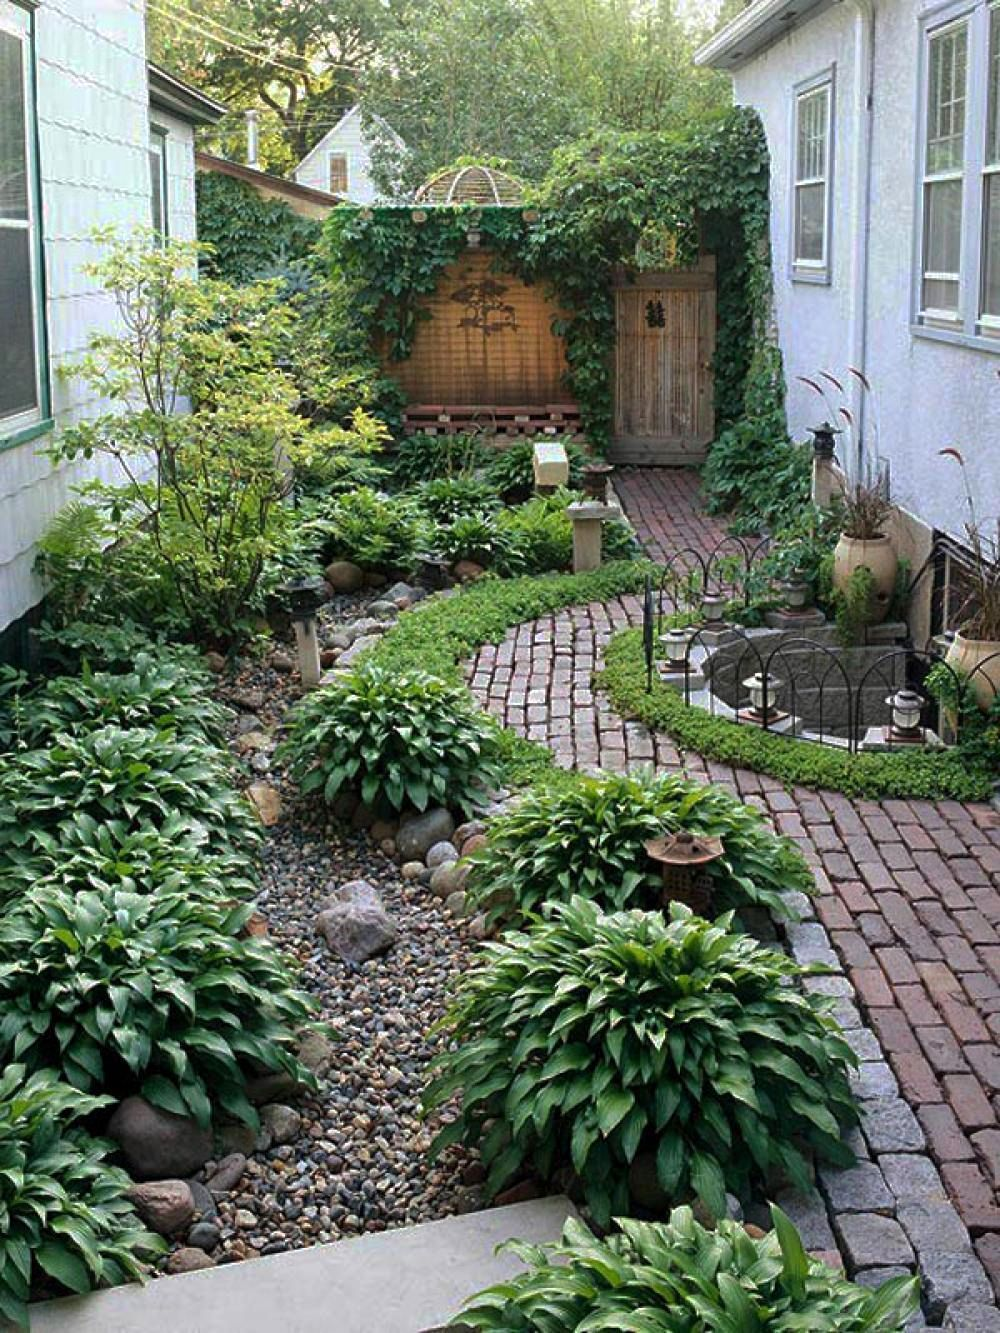 garden-and-patio-narrow-side-yard-house-design-with-simple-landscaping-ideas-and-garden-no-grass-with-trees-and-herb-plants-beside-brick-walkway-and-small- ... & garden-and-patio-narrow-side-yard-house-design-with-simple ...